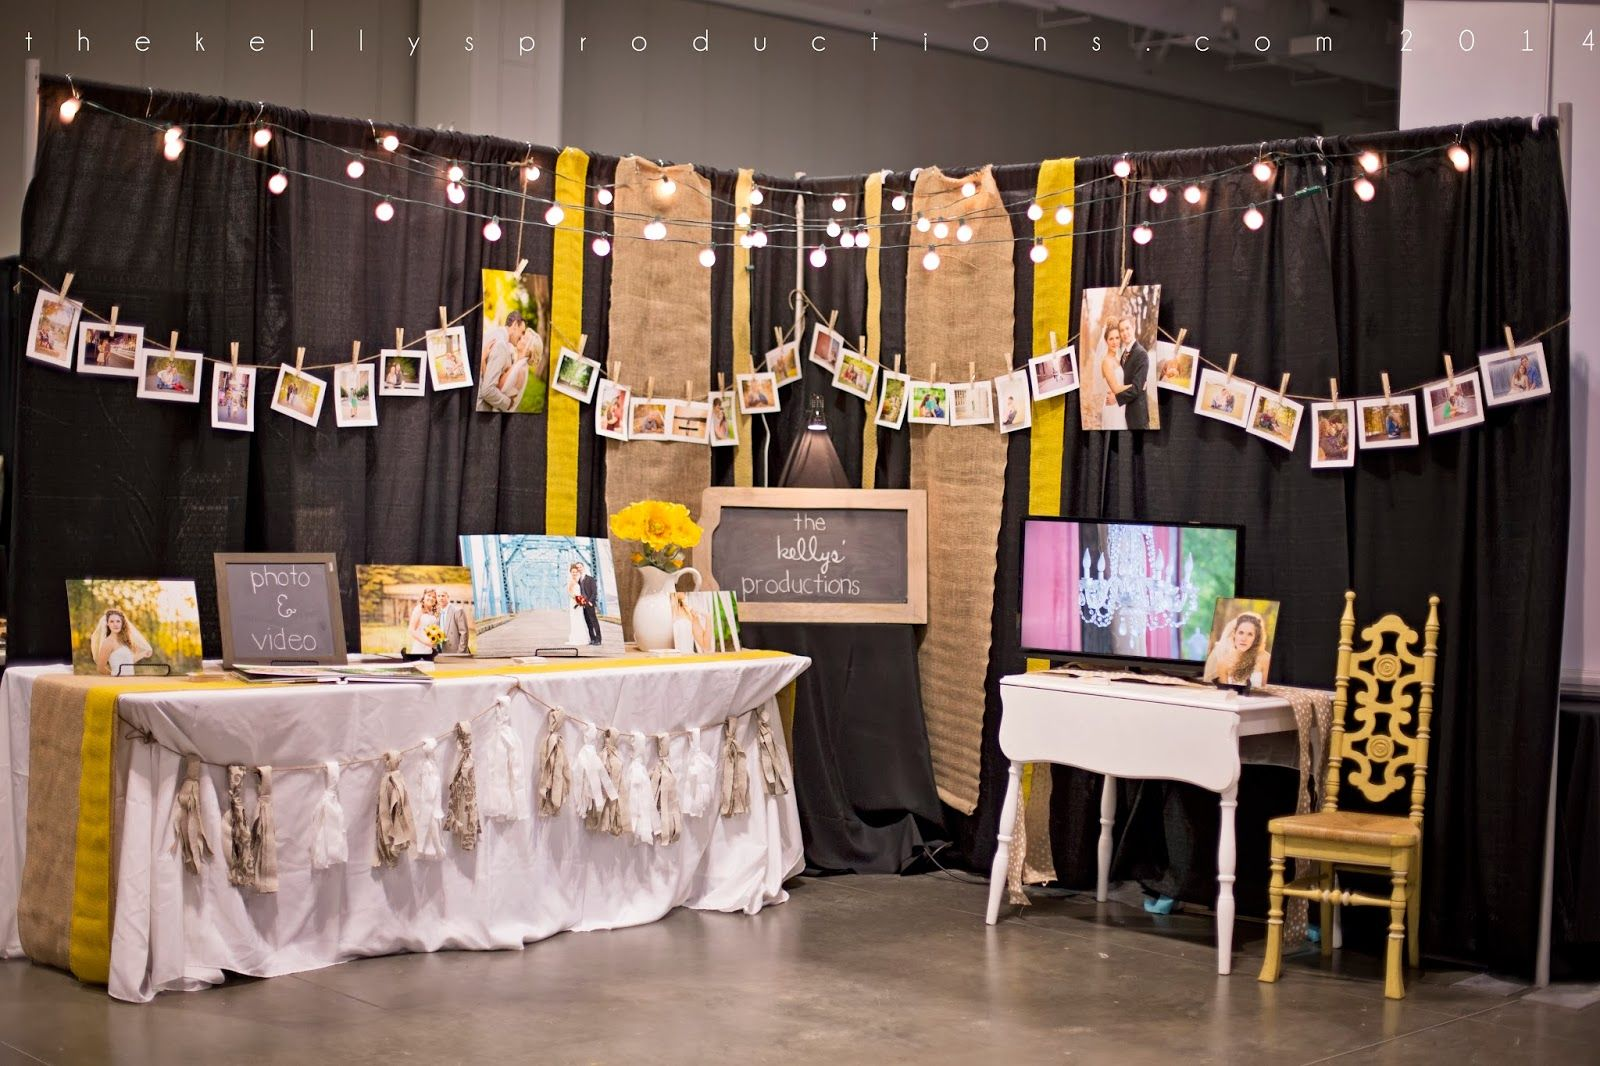 Bridal Show Booth Photography Booth Thekellysproductions Com Lensesandpaws Bridal Show Booths Photography Booth Bridal Show